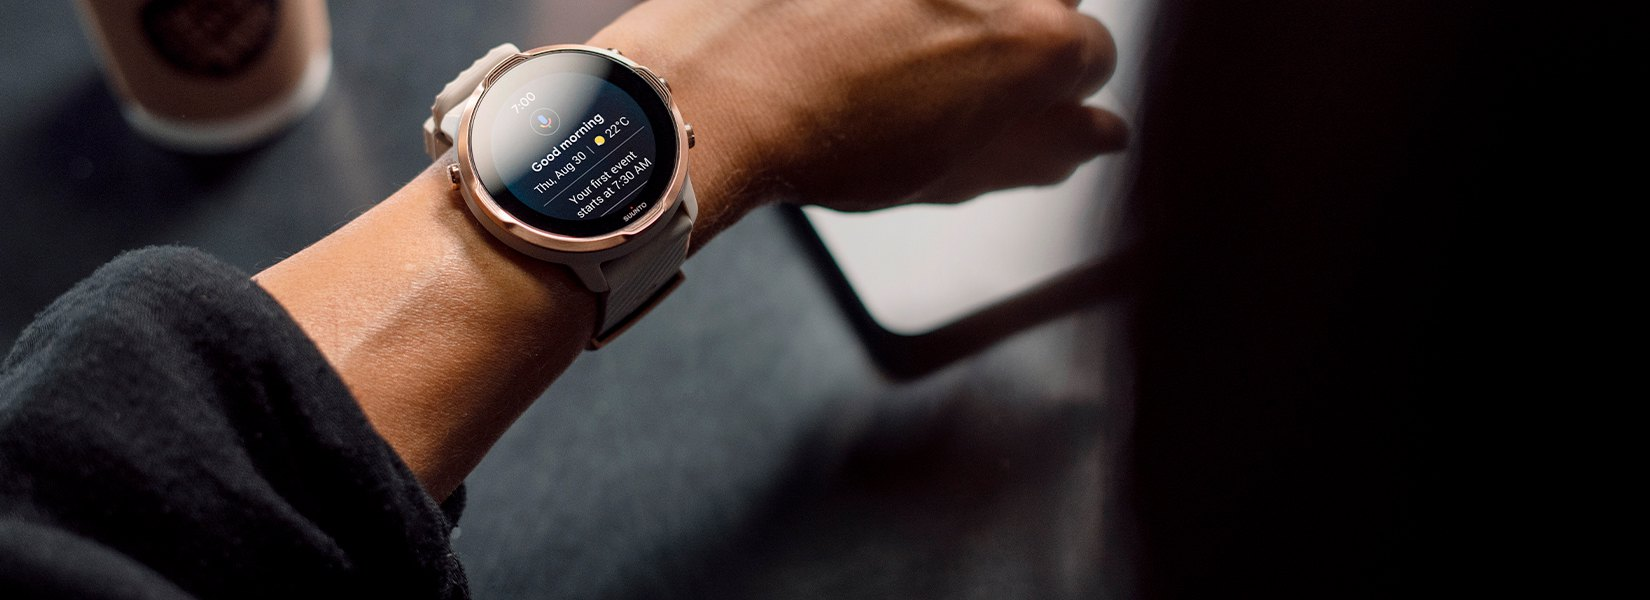 Suunto 7. The Smartwatch for Sporty Life